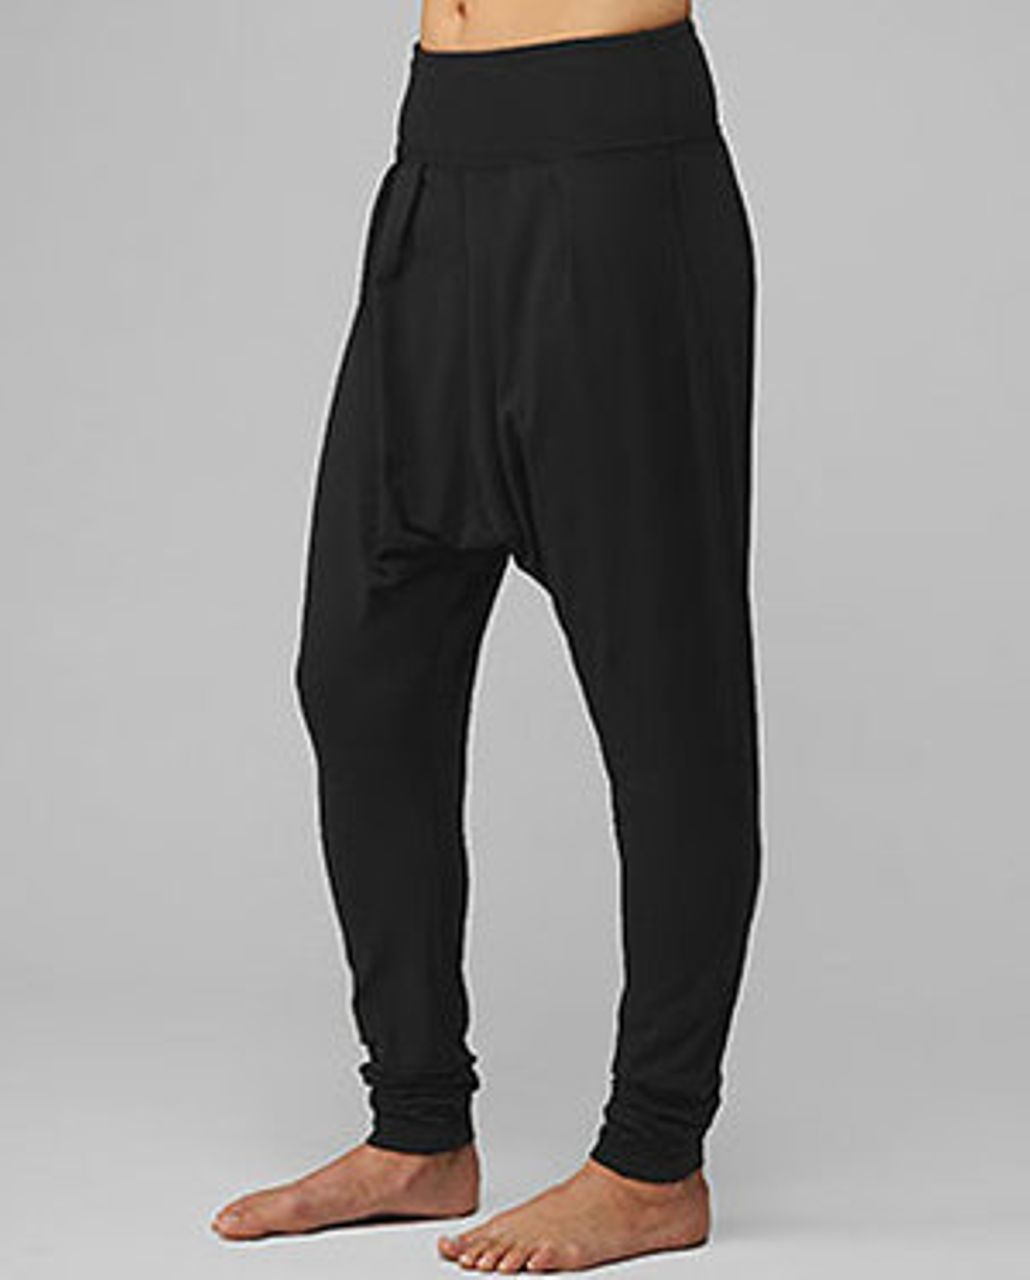 Lululemon Harem Yoga Pants - Black